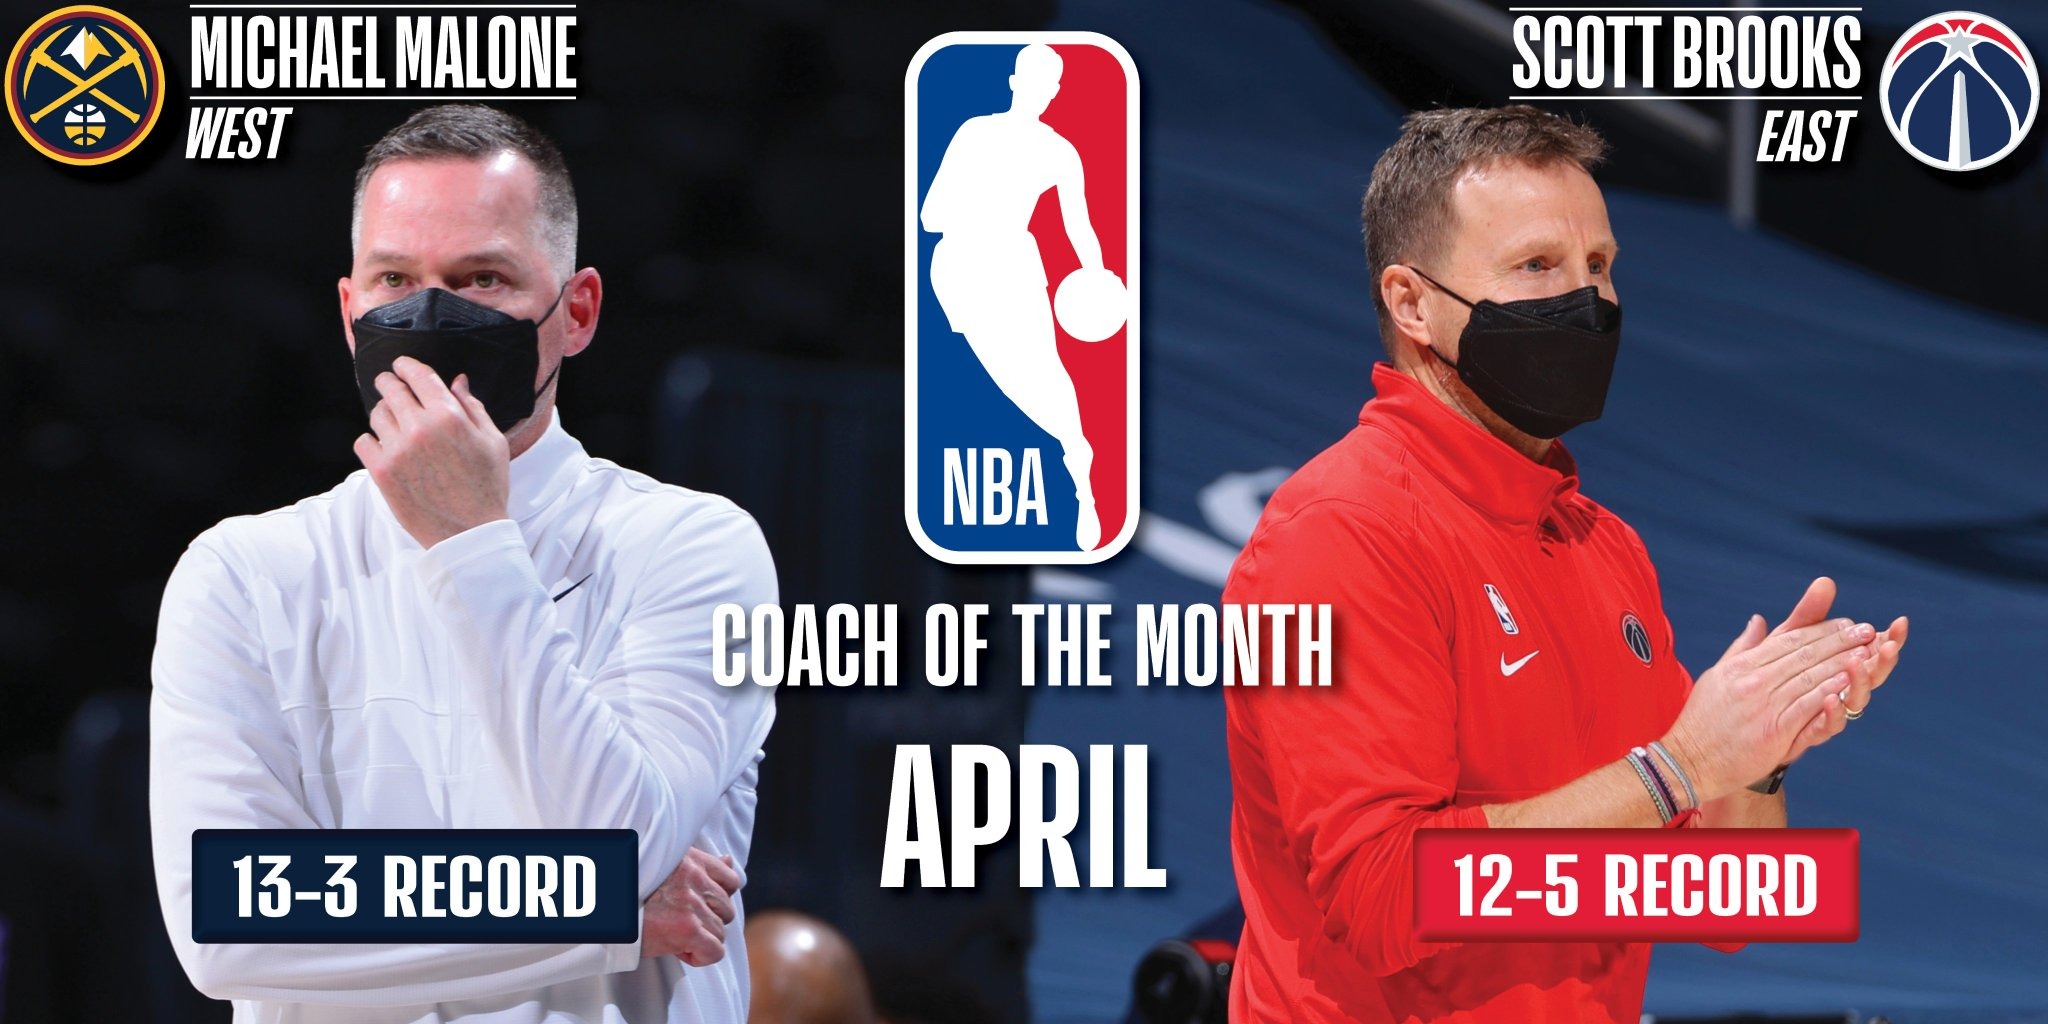 Mike Malone, Scott Brooks named NBA Coaches of the Month